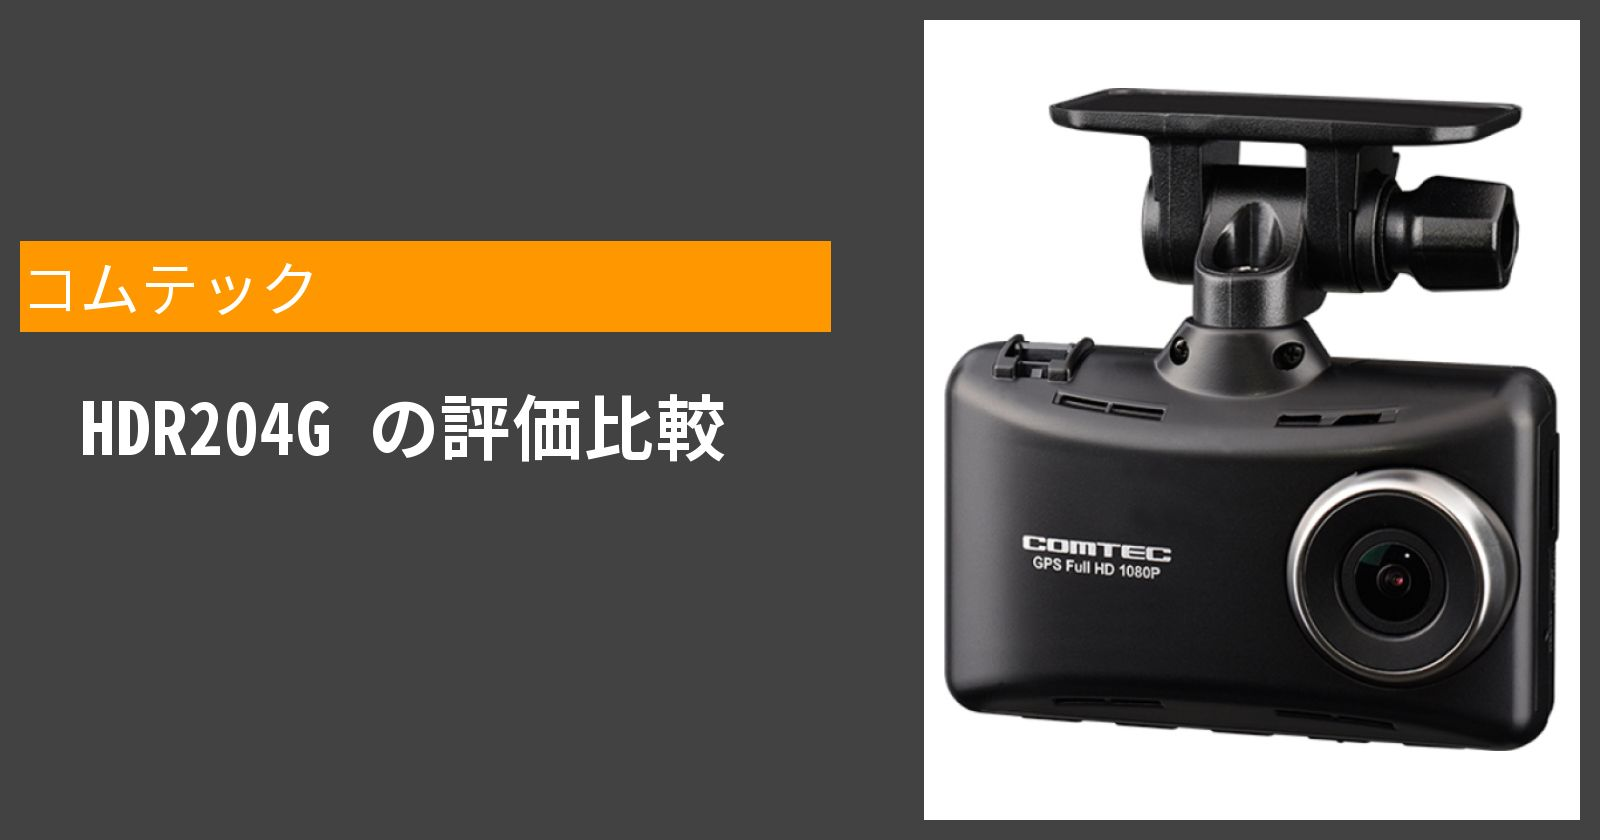 HDR204Gを徹底評価